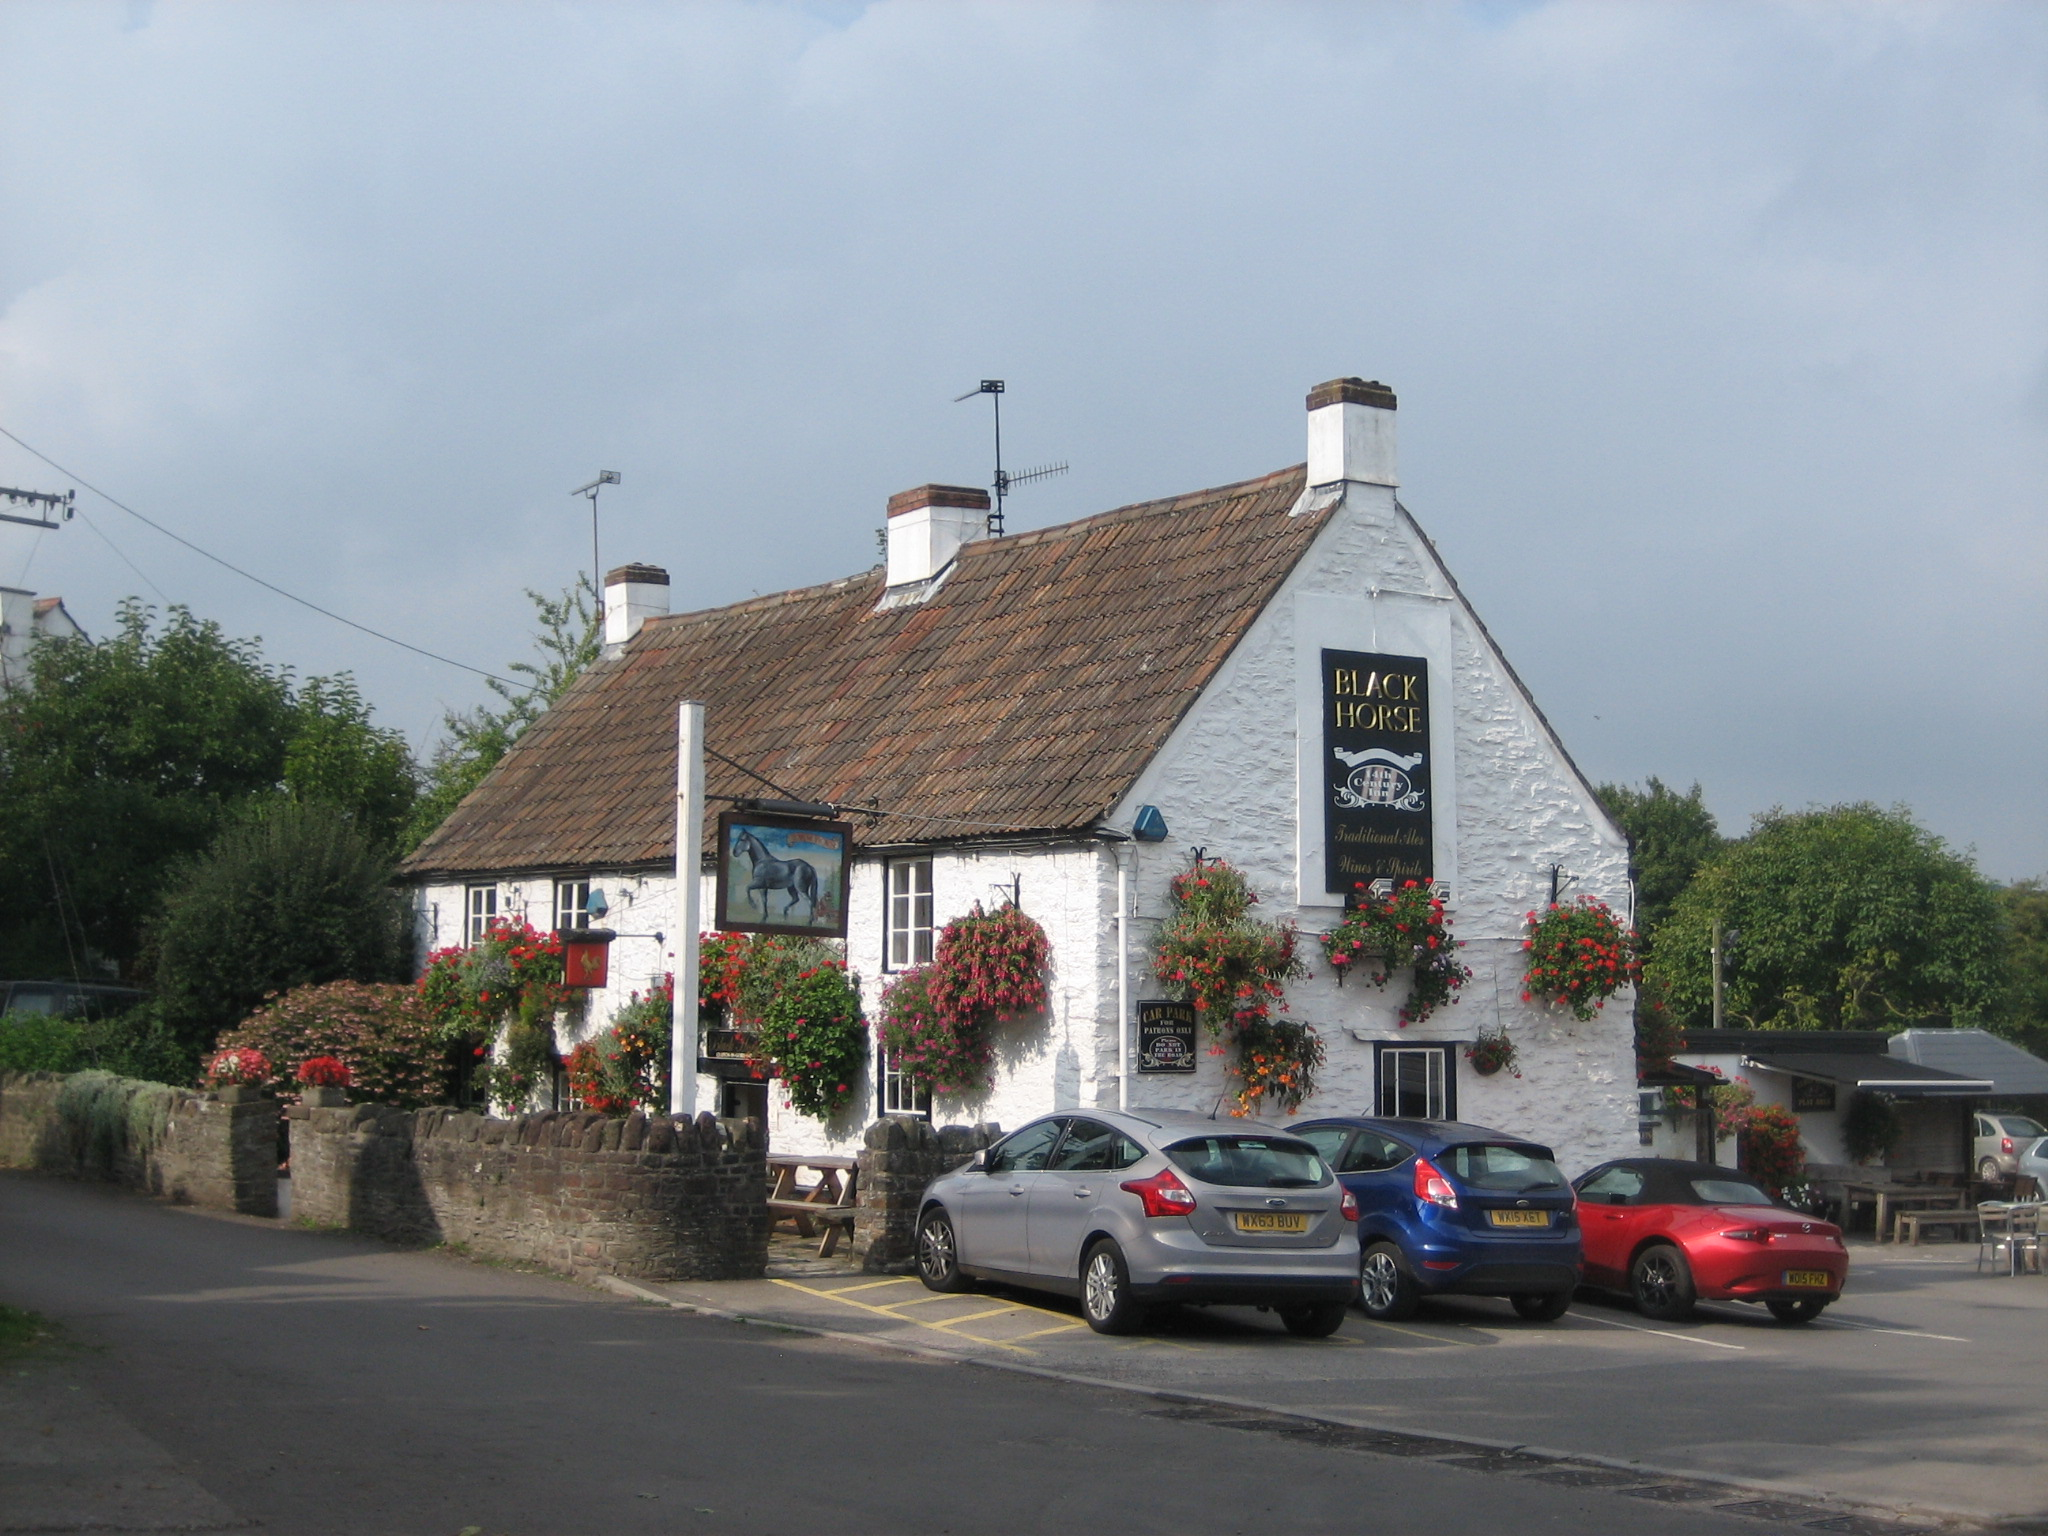 he Black Horse at Clapton-in-Gordano